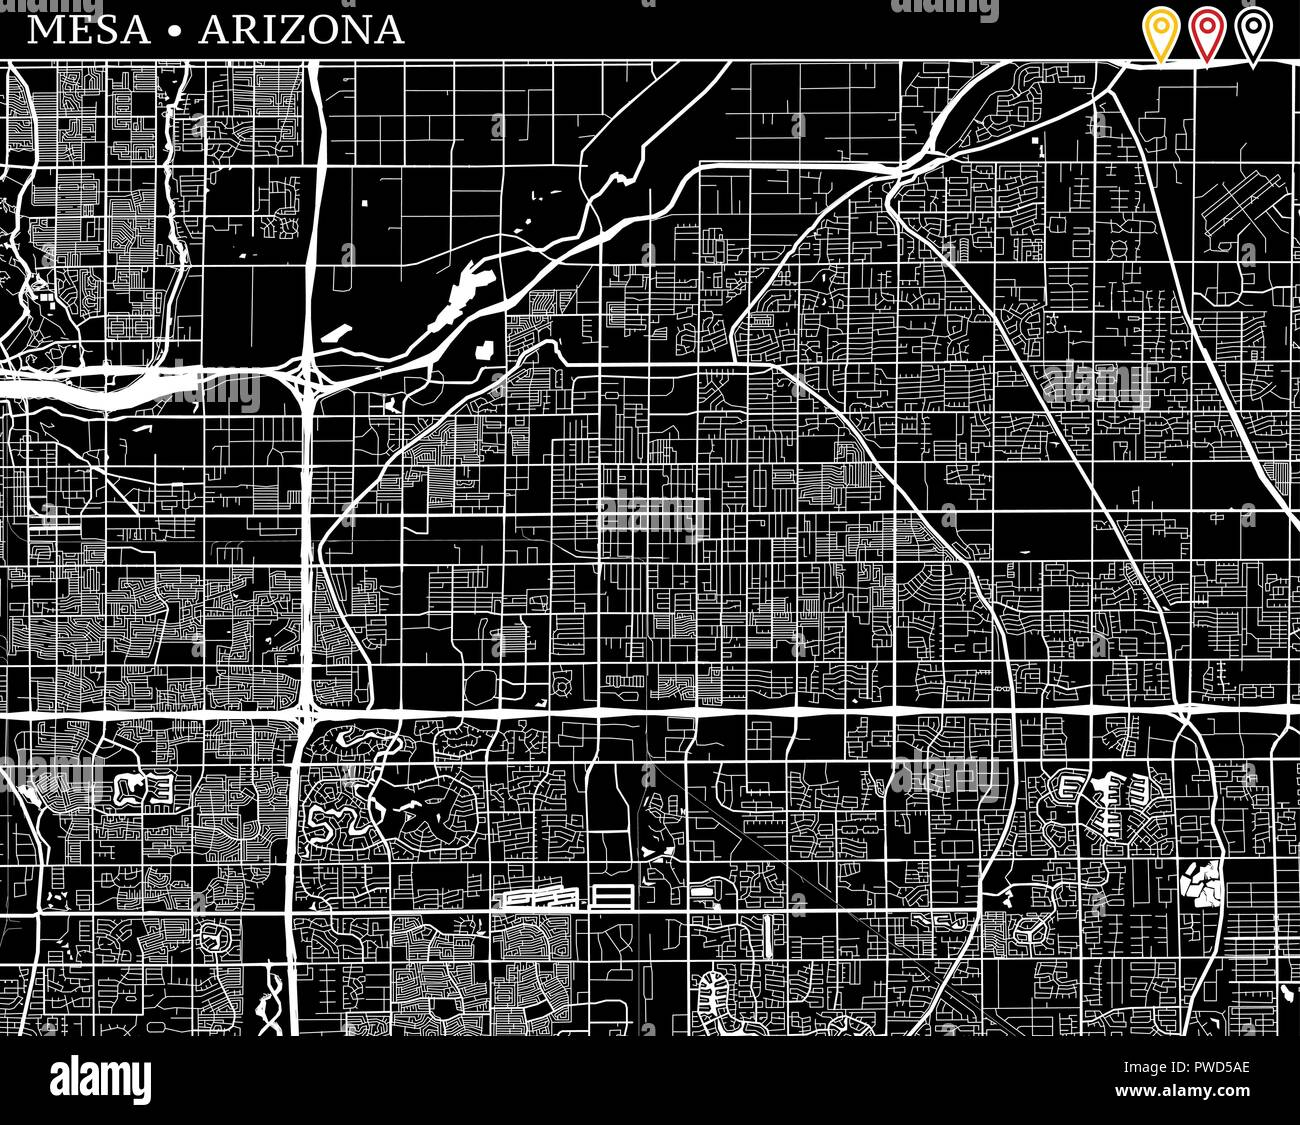 Simple map of Mesa, Arizona, USA. Black and white version for clean ...